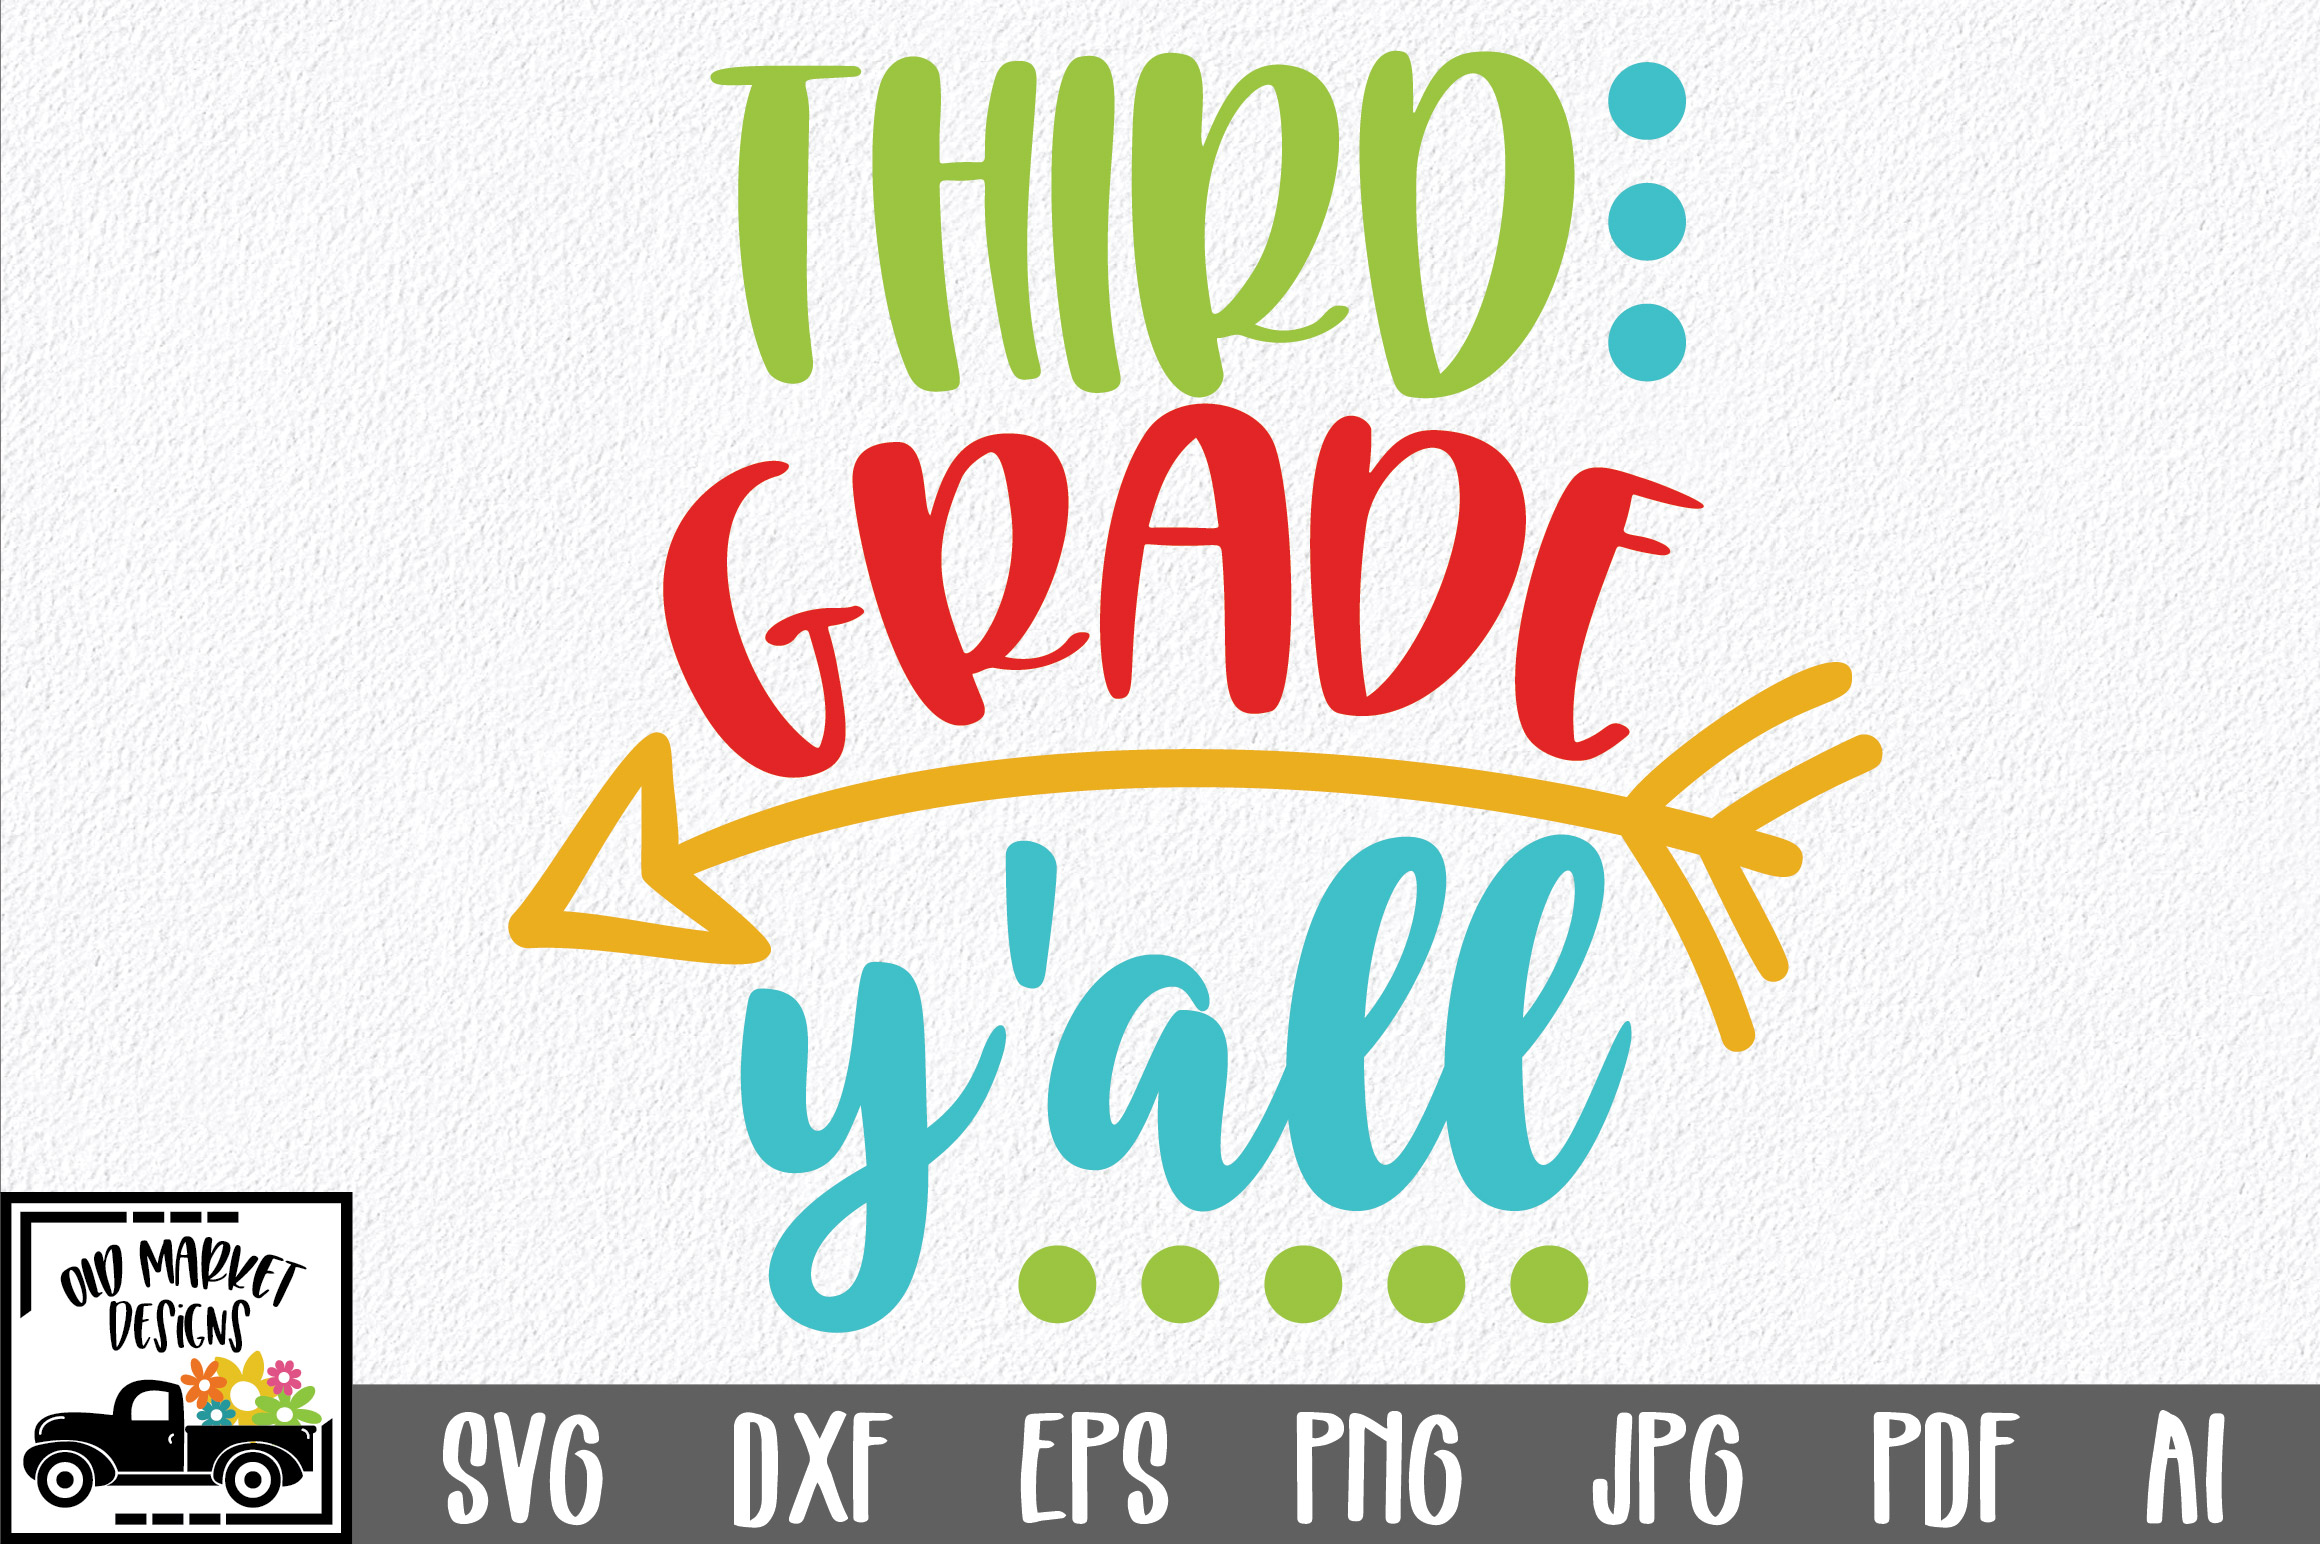 Download Free Third Grade Y All Svg Cut File Graphic By Oldmarketdesigns for Cricut Explore, Silhouette and other cutting machines.